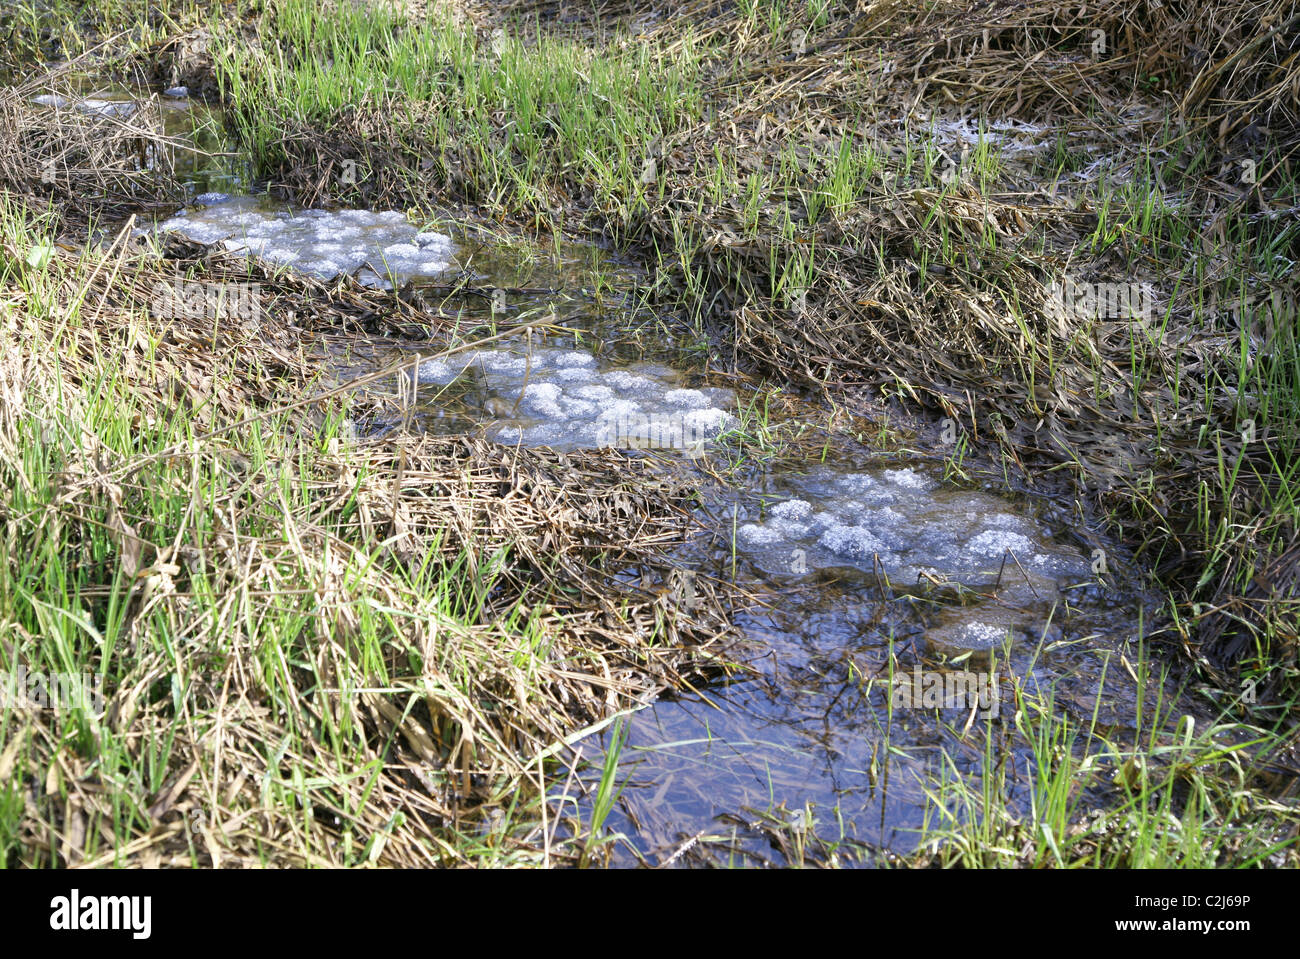 Frozen frog spawn, or frogspawn in water - Stock Image